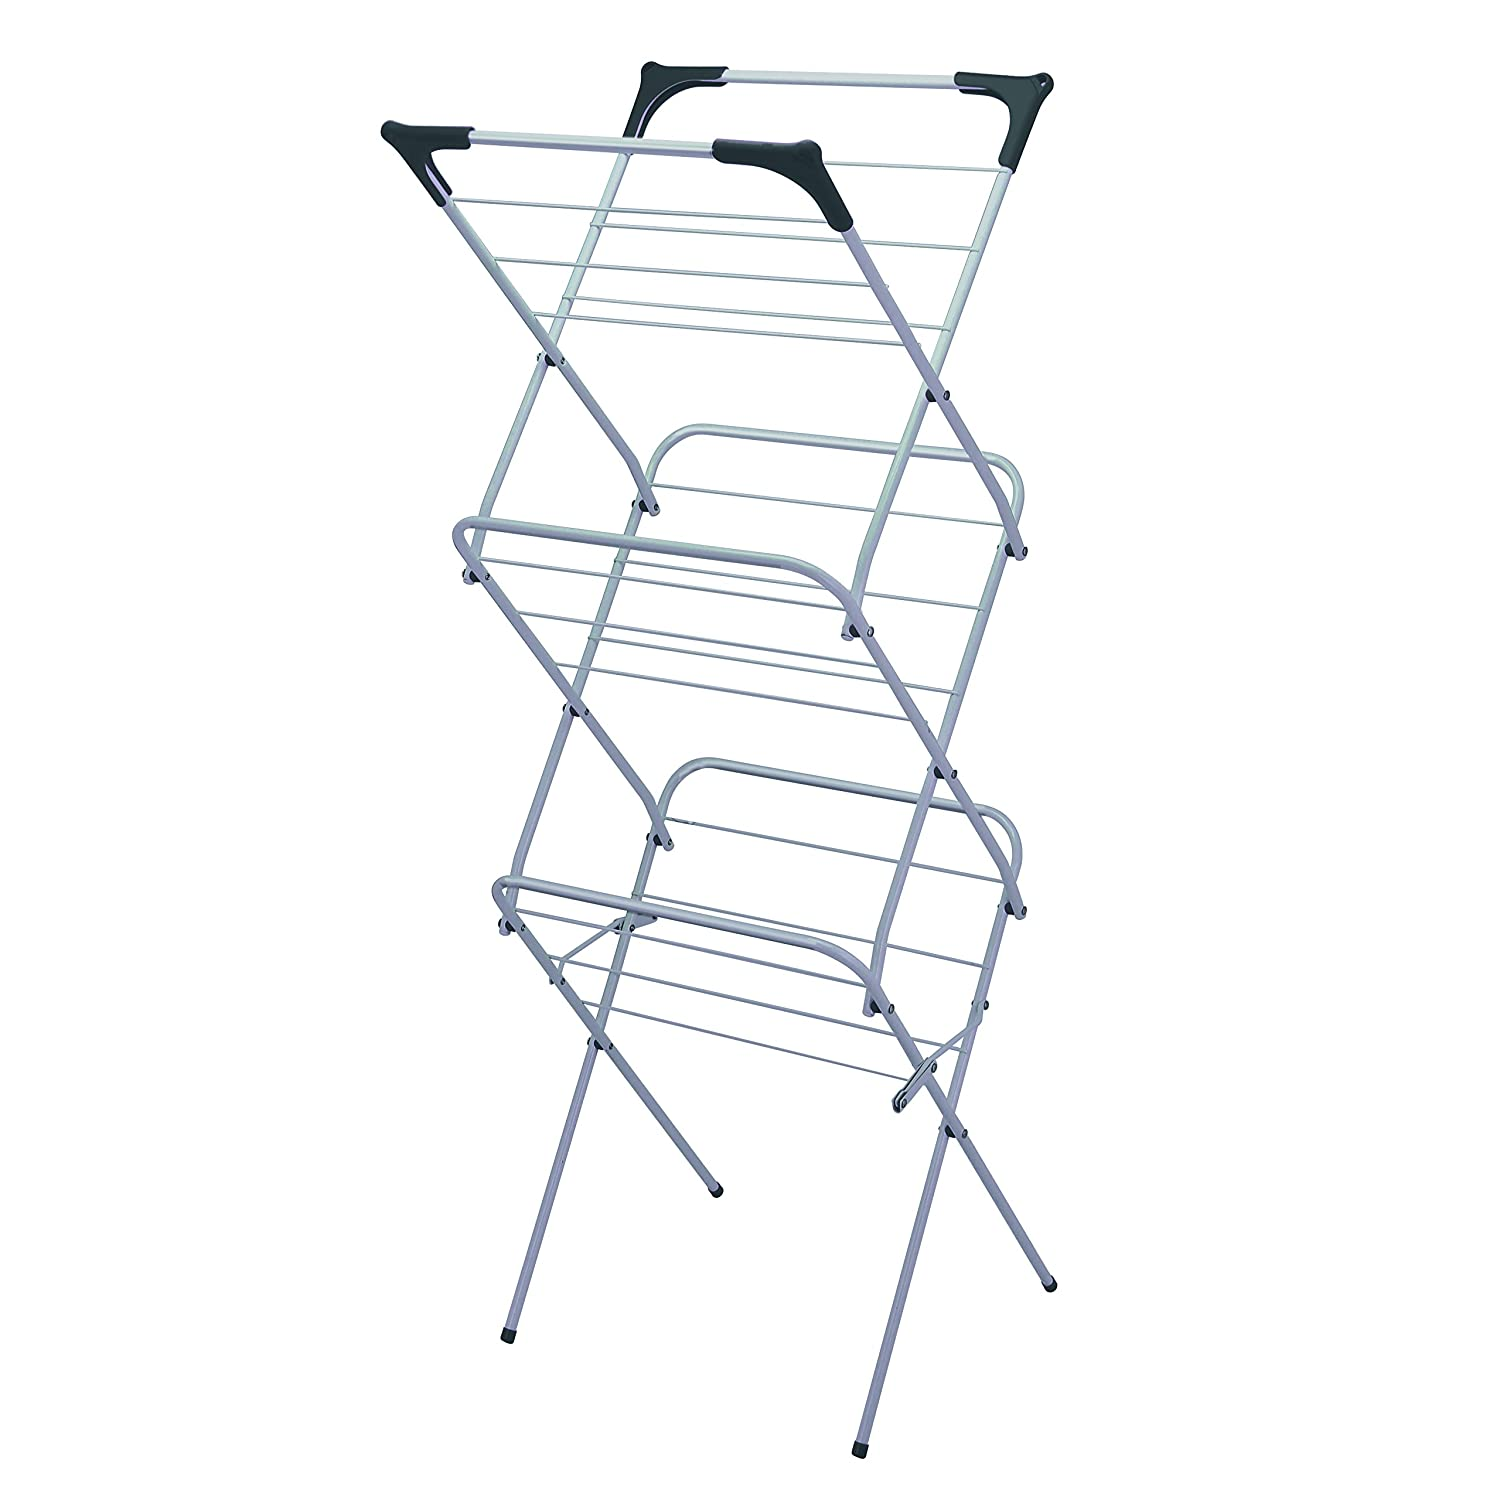 Metal 15 m Indoor and Outdoor Laundry Horse Drying Rack Silver Grey Highlands 3 Tier Space 139x61x44 approx Clothes Airer